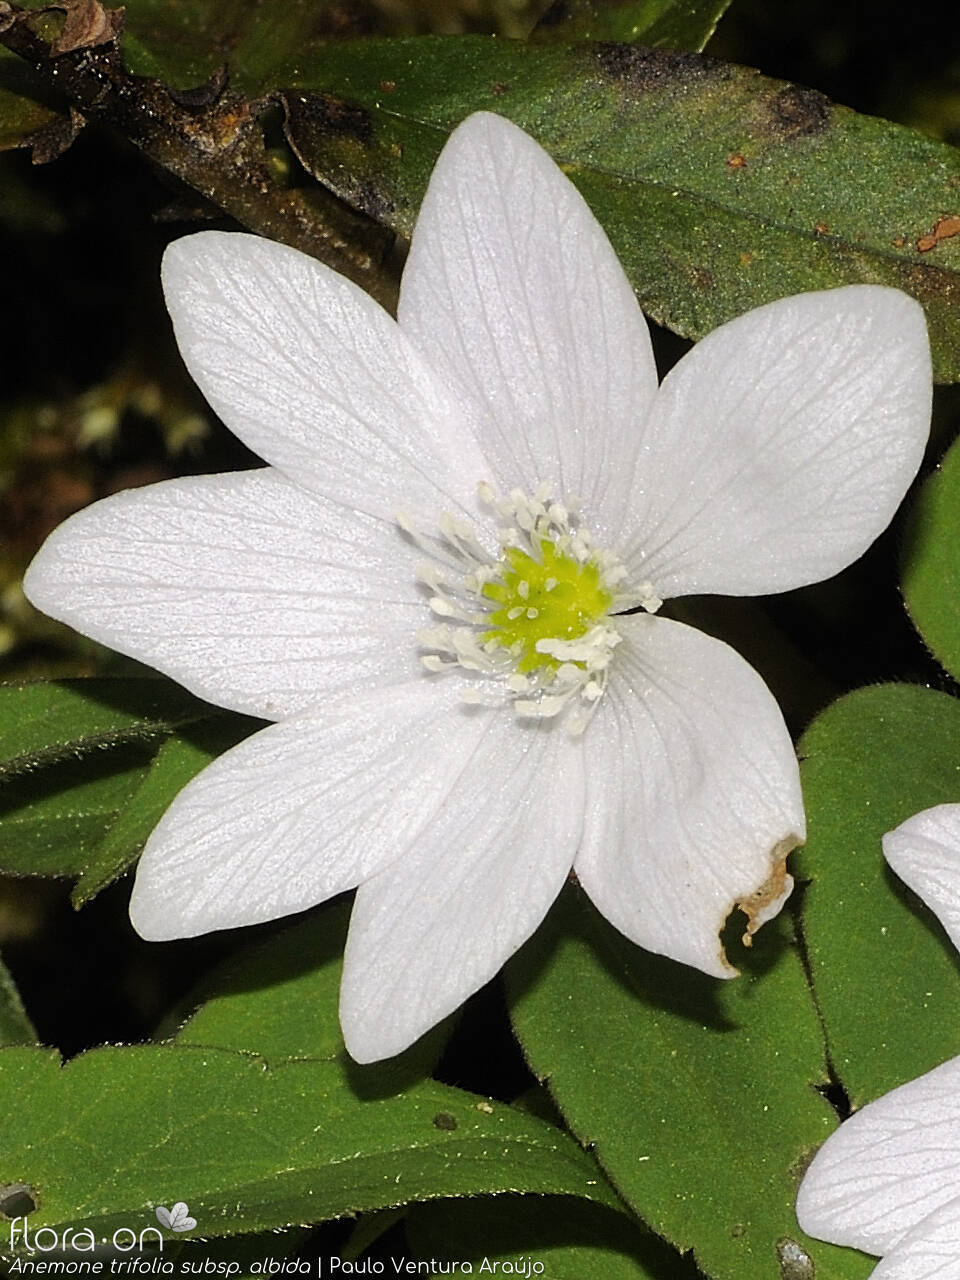 Anemone trifolia albida - Flor (close-up) | Paulo Ventura Araújo; CC BY-NC 4.0